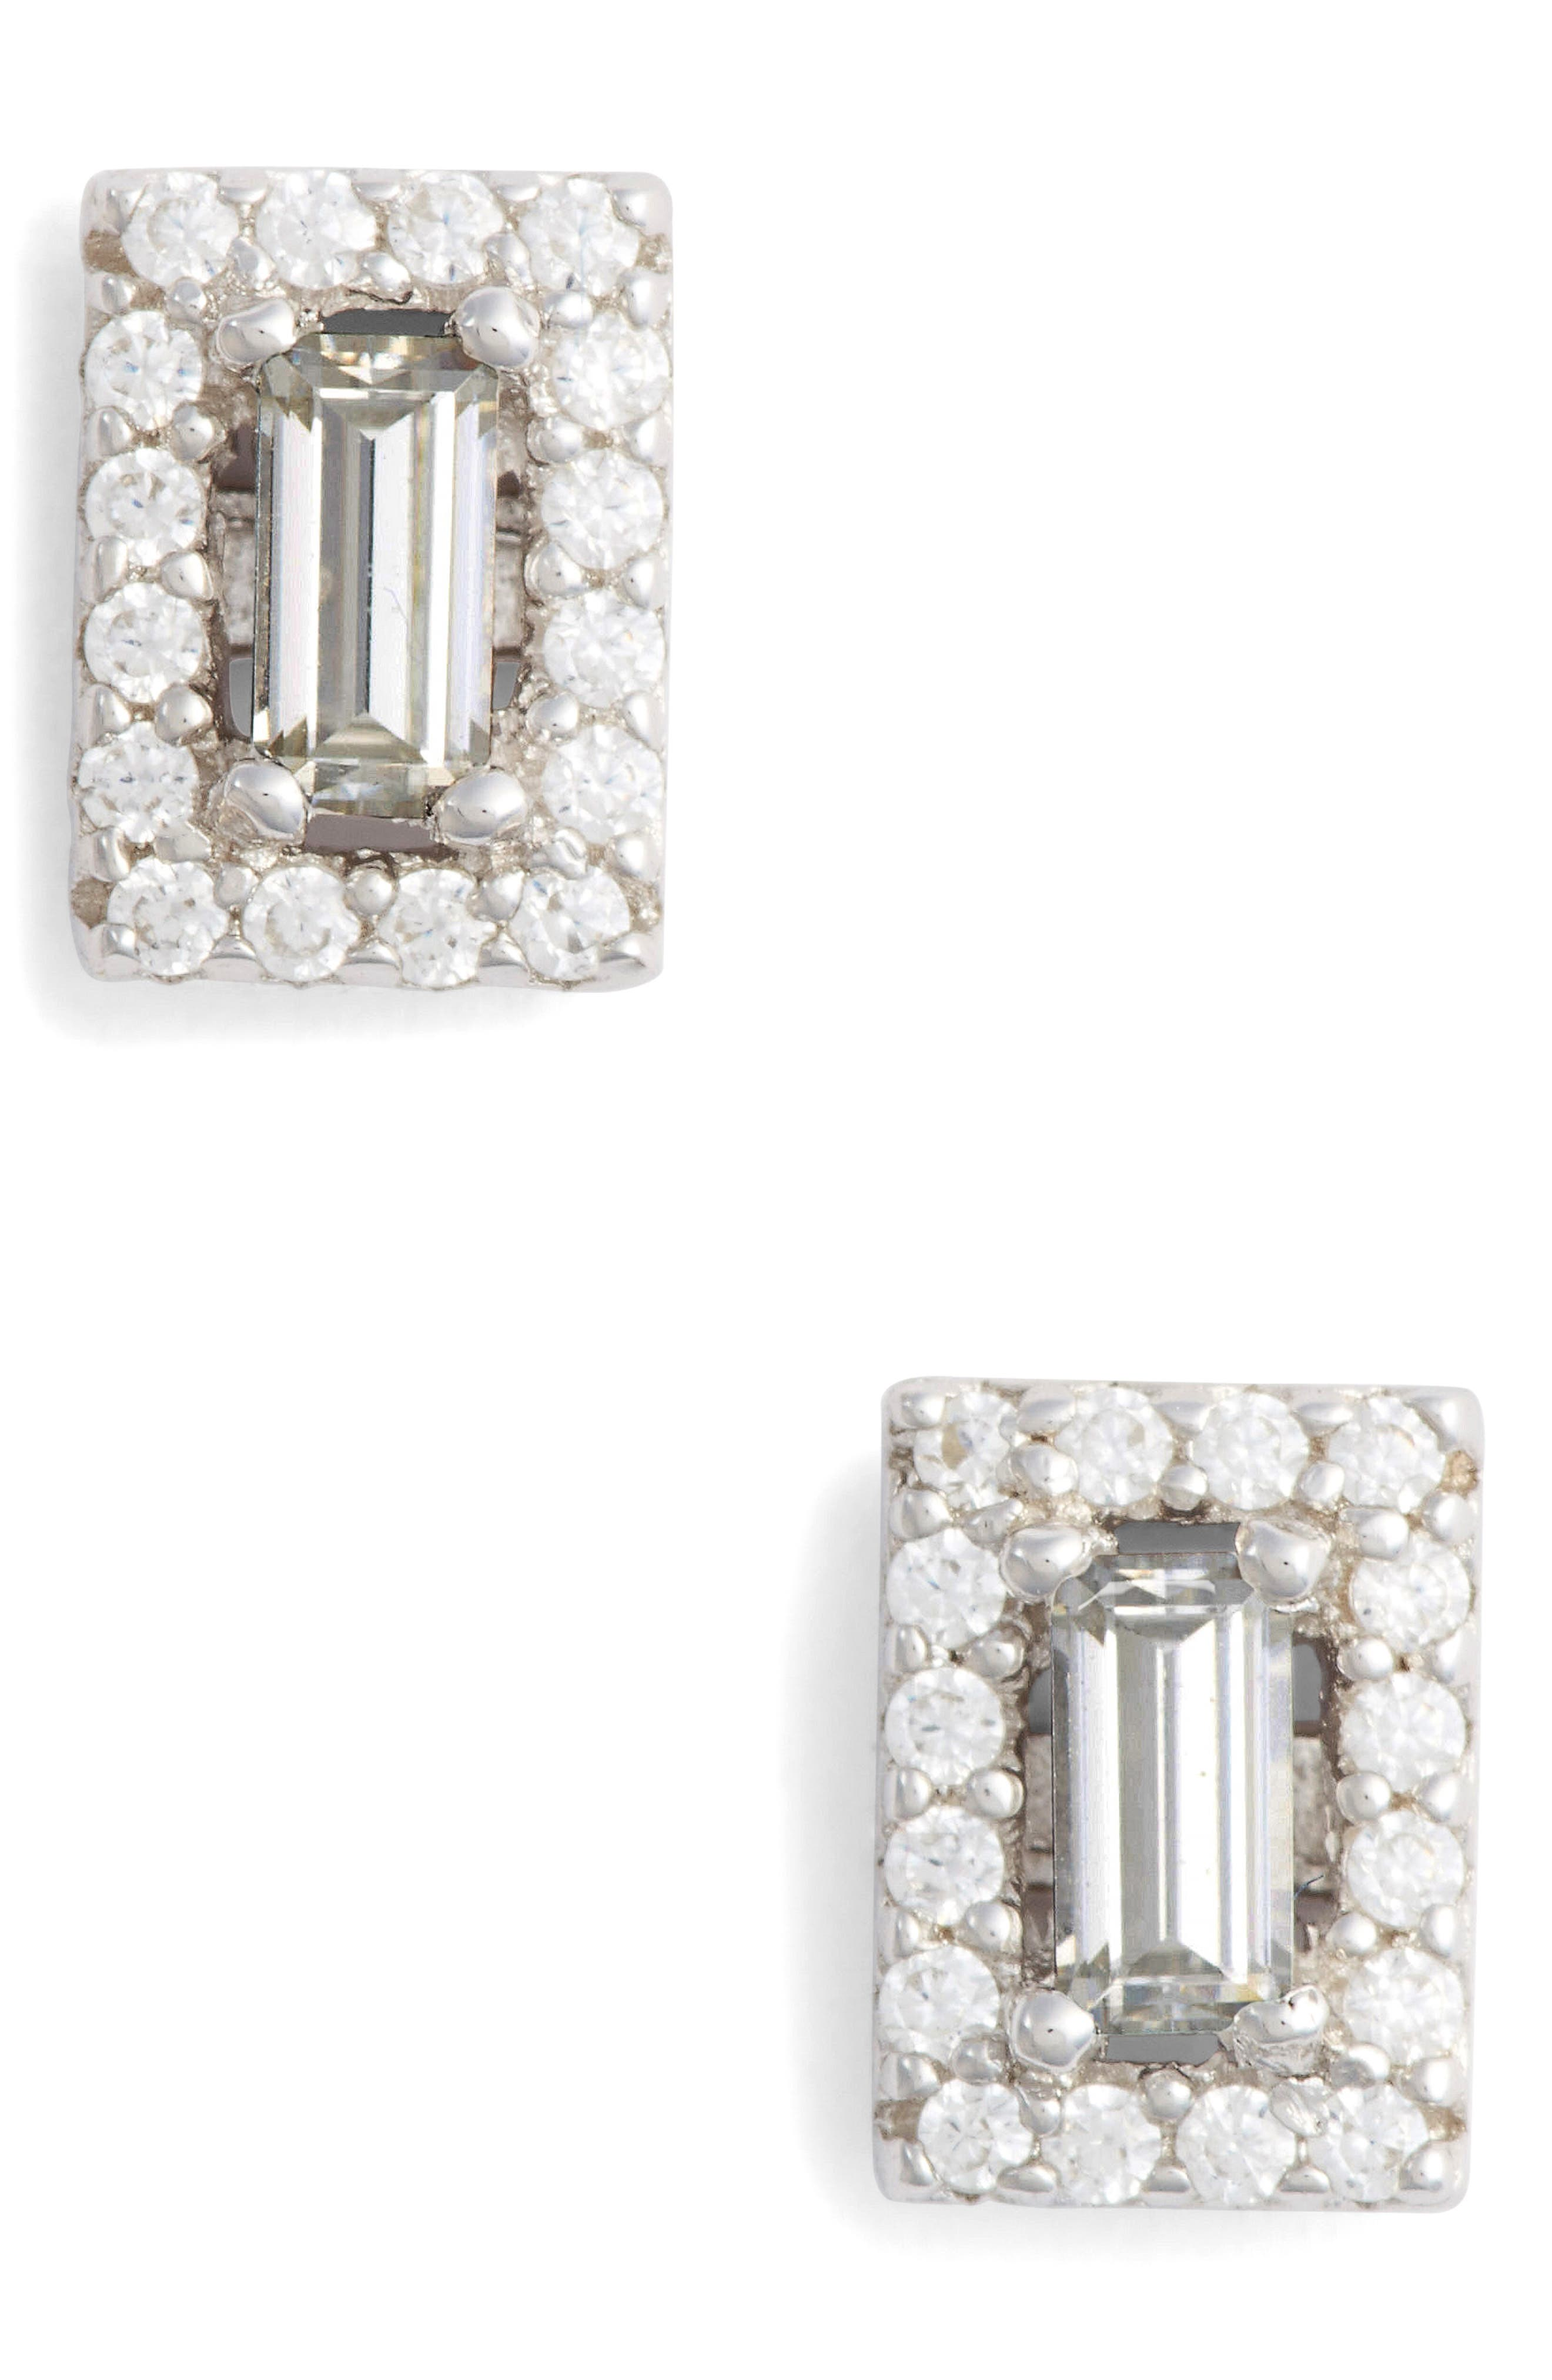 Crystal Baguette Simulated Diamond Stud Earrings,                         Main,                         color, SILVER/ CLEAR